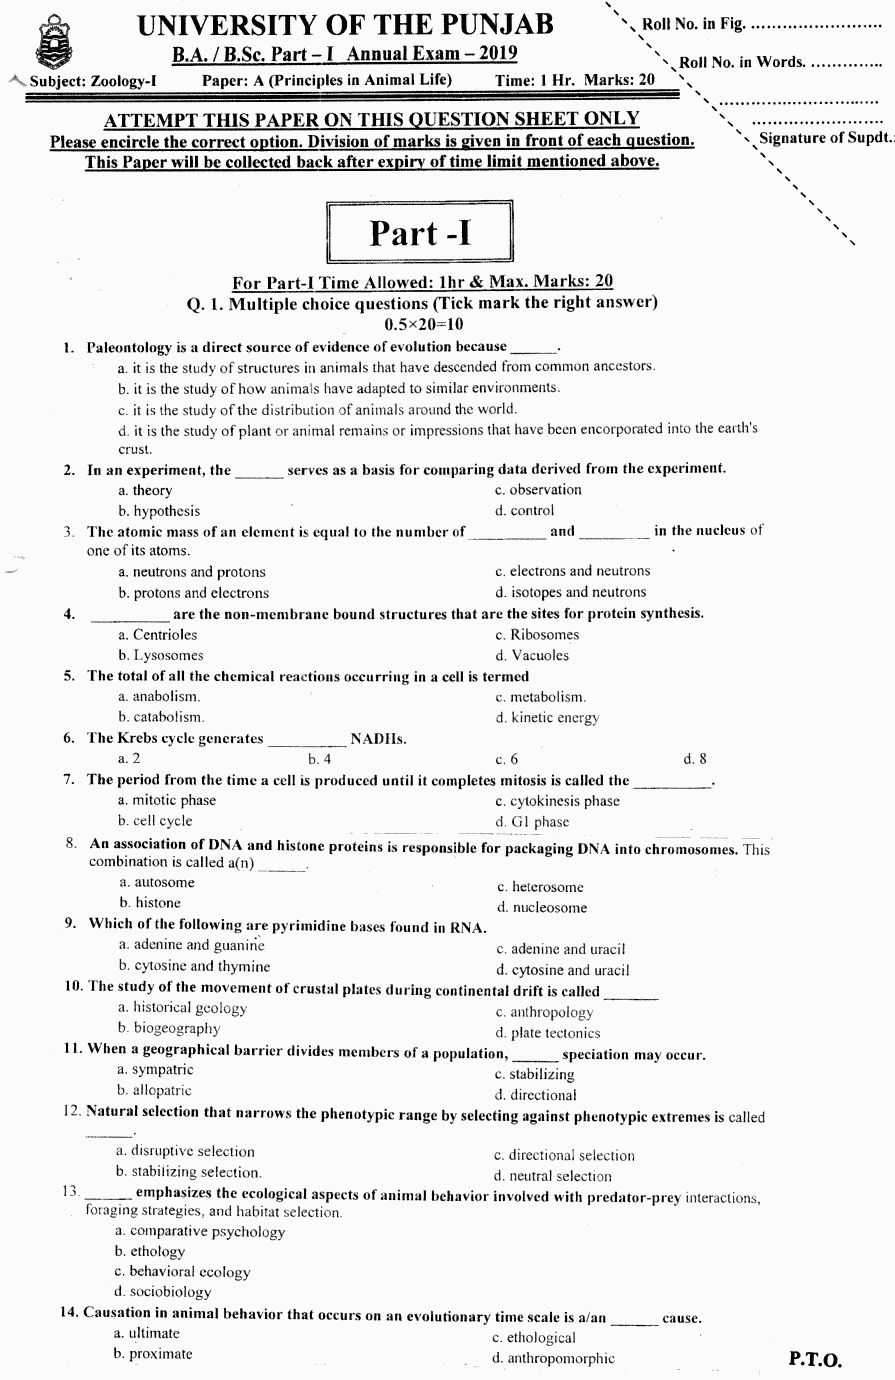 Zoology Principles In Animal Life Group 1 BA Part 1 Past Papers 2019